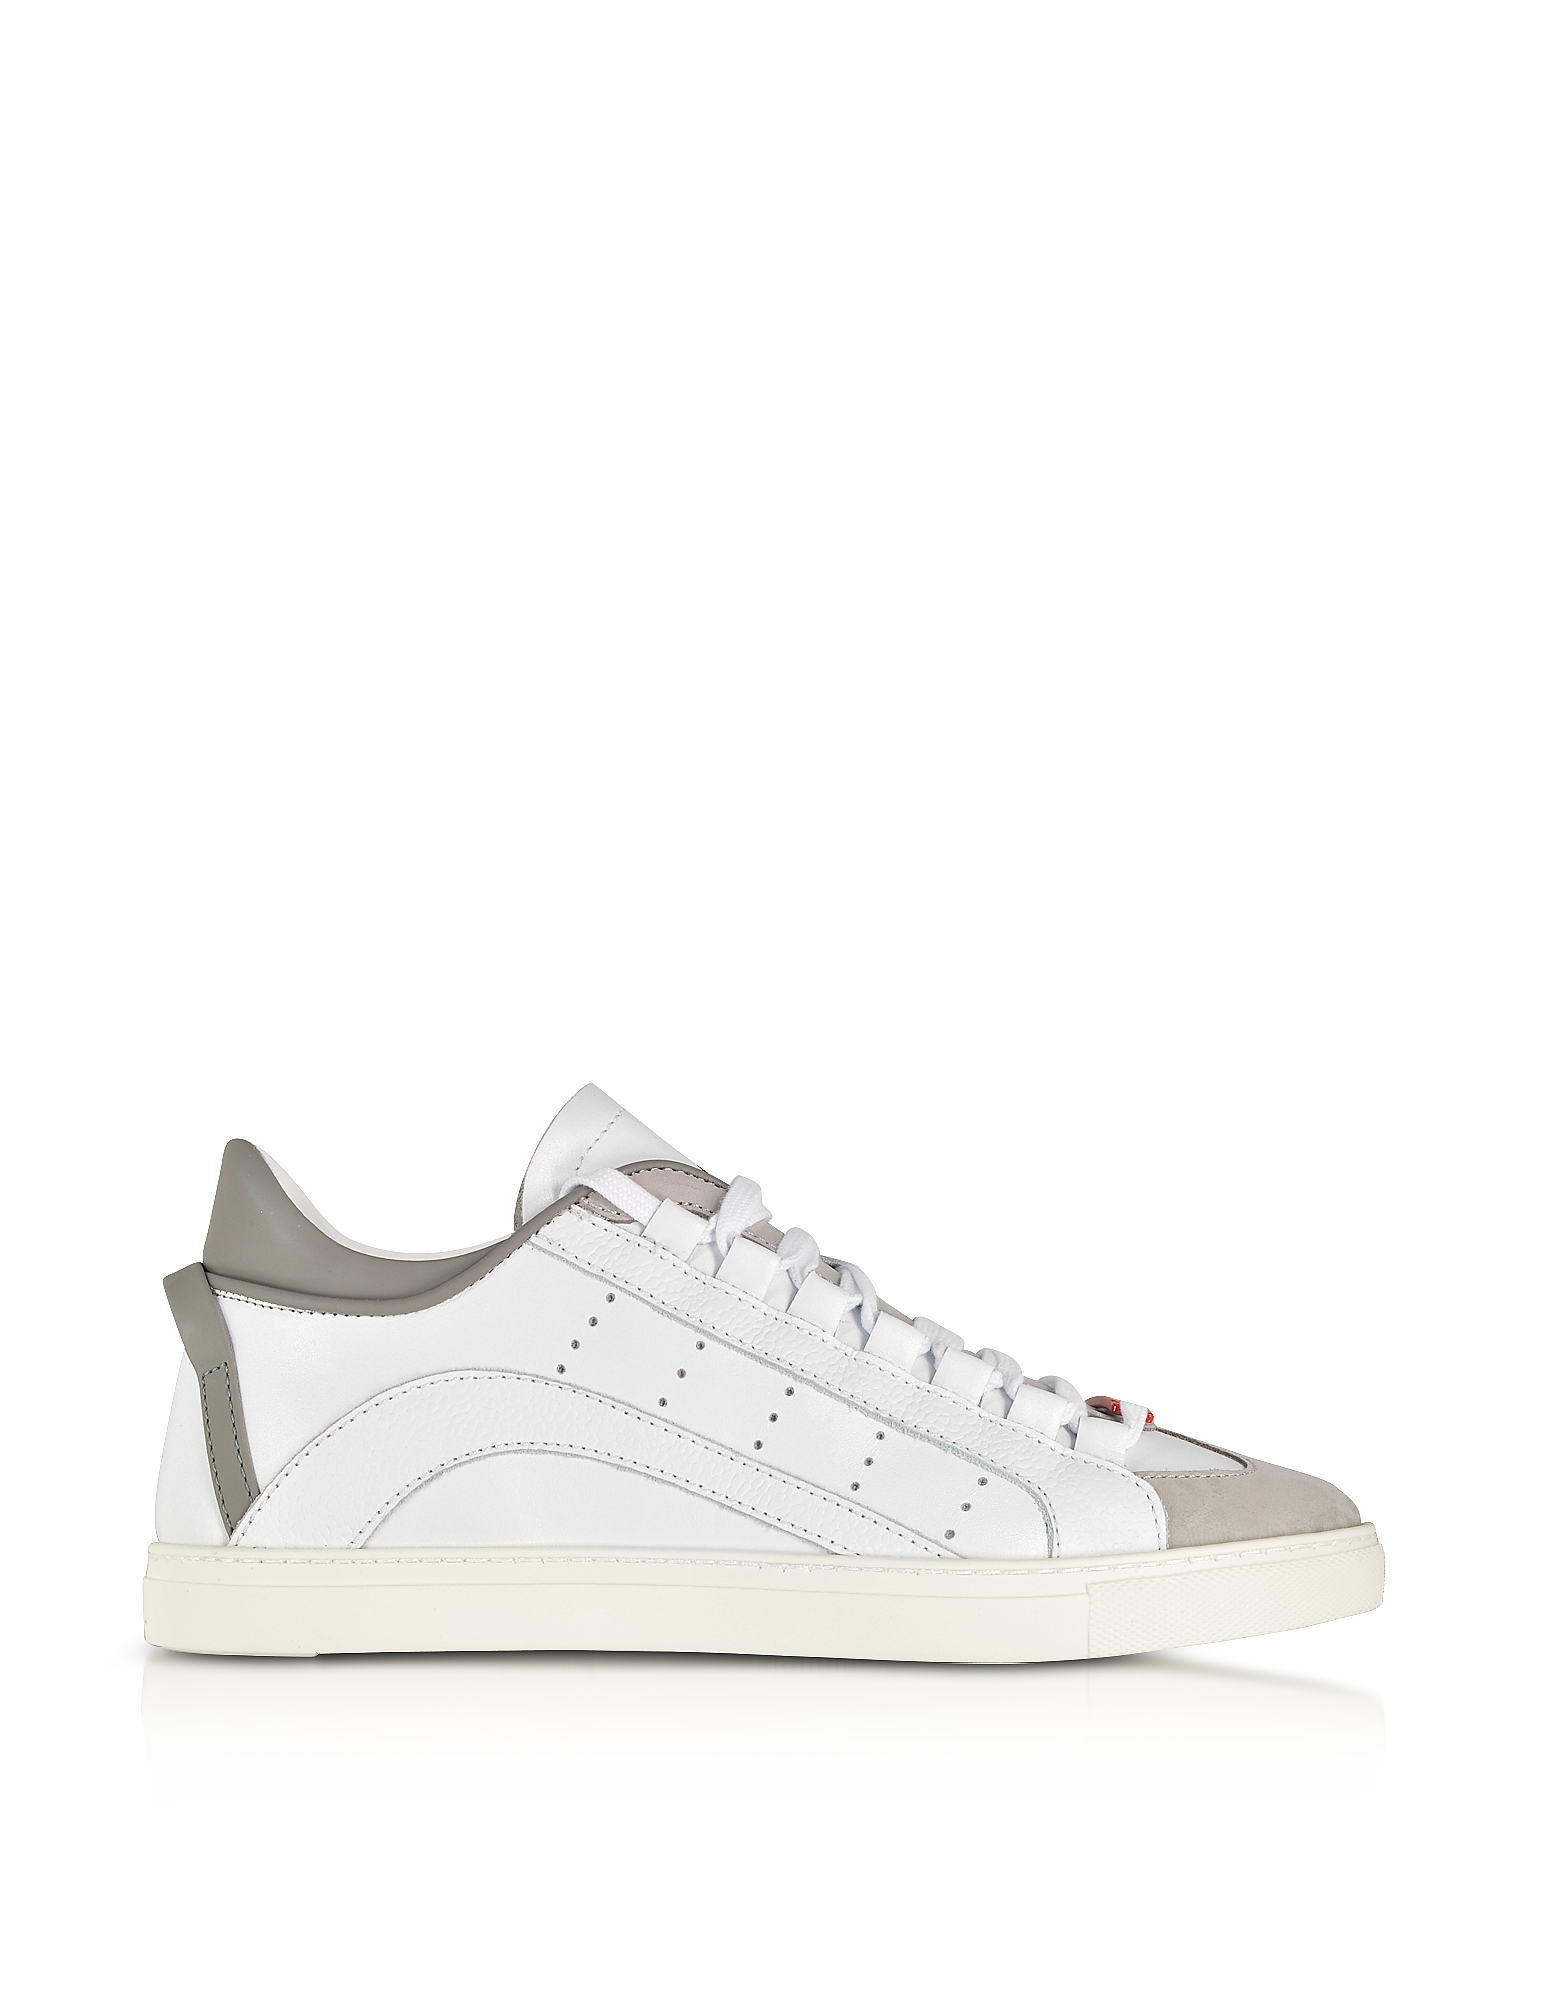 DSquared2 Shoes, White and Gray Leather Low Top Men's Sneakers